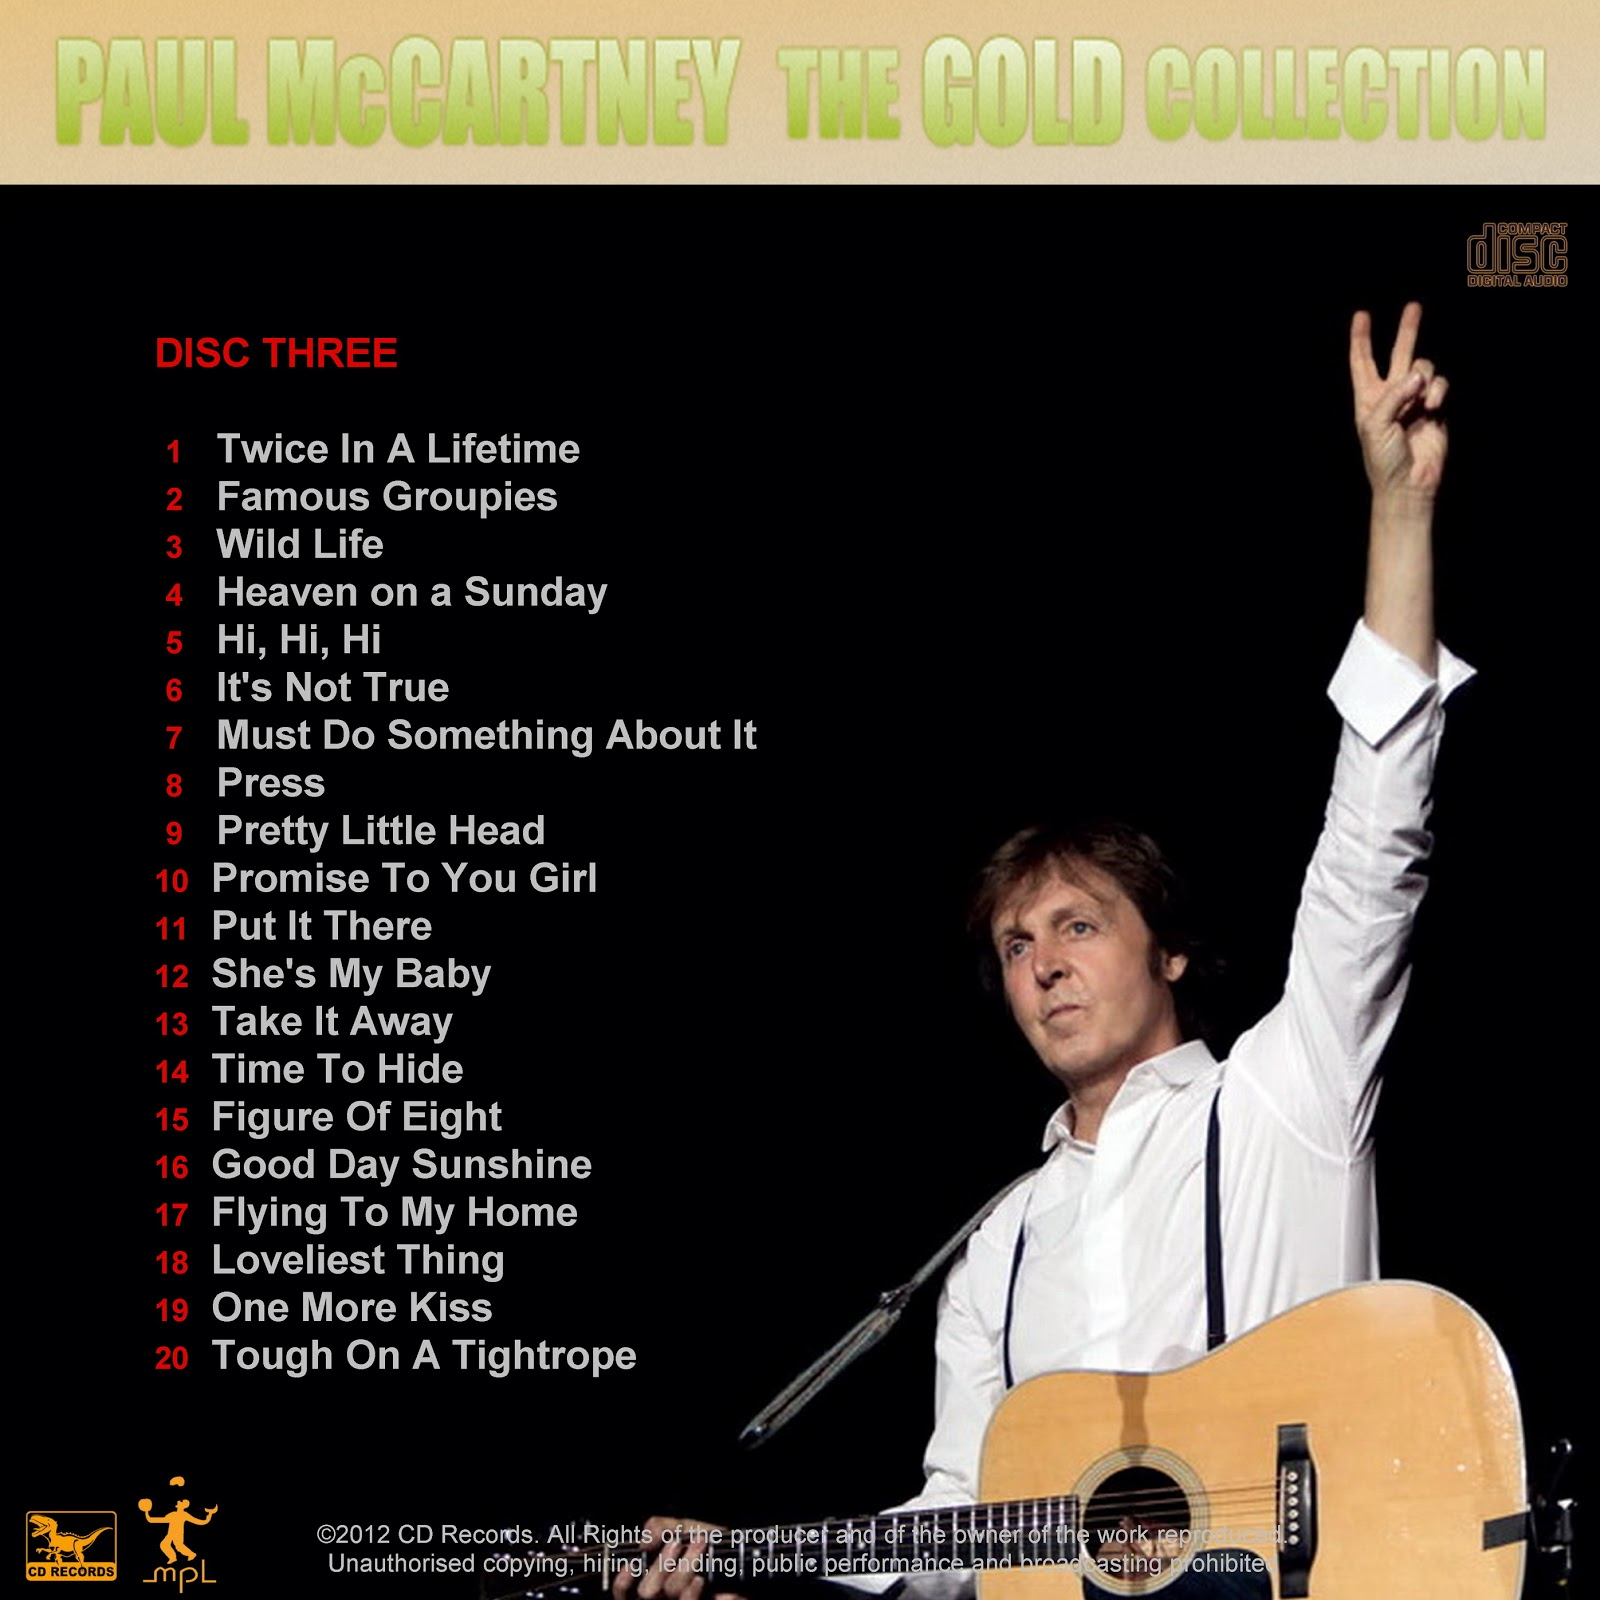 Paul McCartney   The Gold Collection 2012 3 CDs 1600x1600